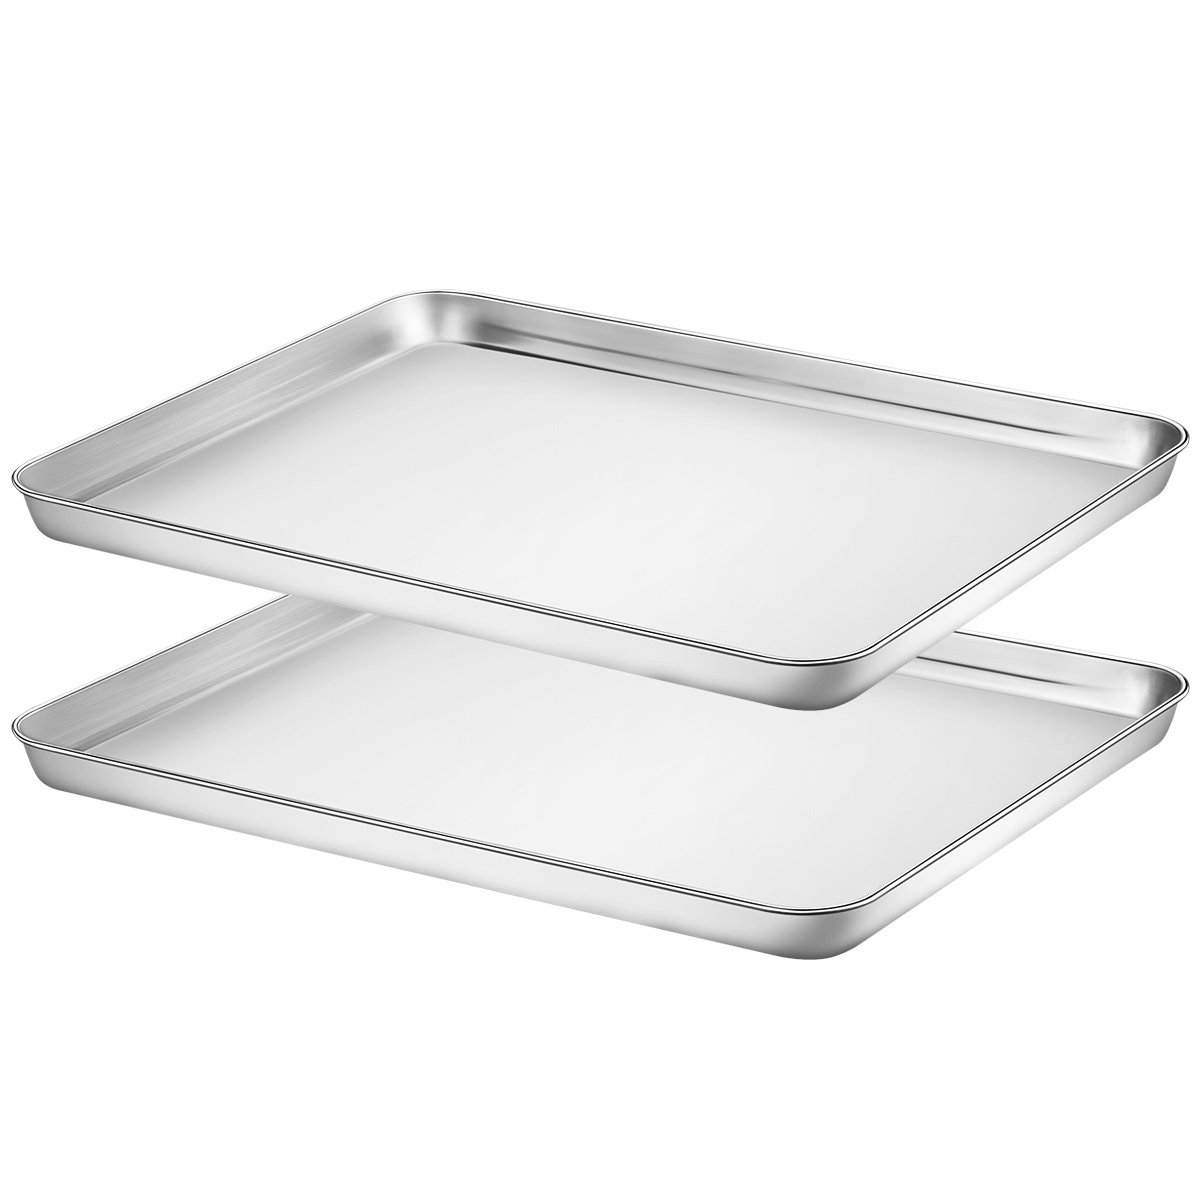 Large Baking Sheets Set 2, HKJ Chef Cookie Sheets 2 Pieces & Stainless Steel Baking tray & Toaster Oven Baking Pans & Non Toxic & Healthy & Easy Clean & Dishwasher Safe